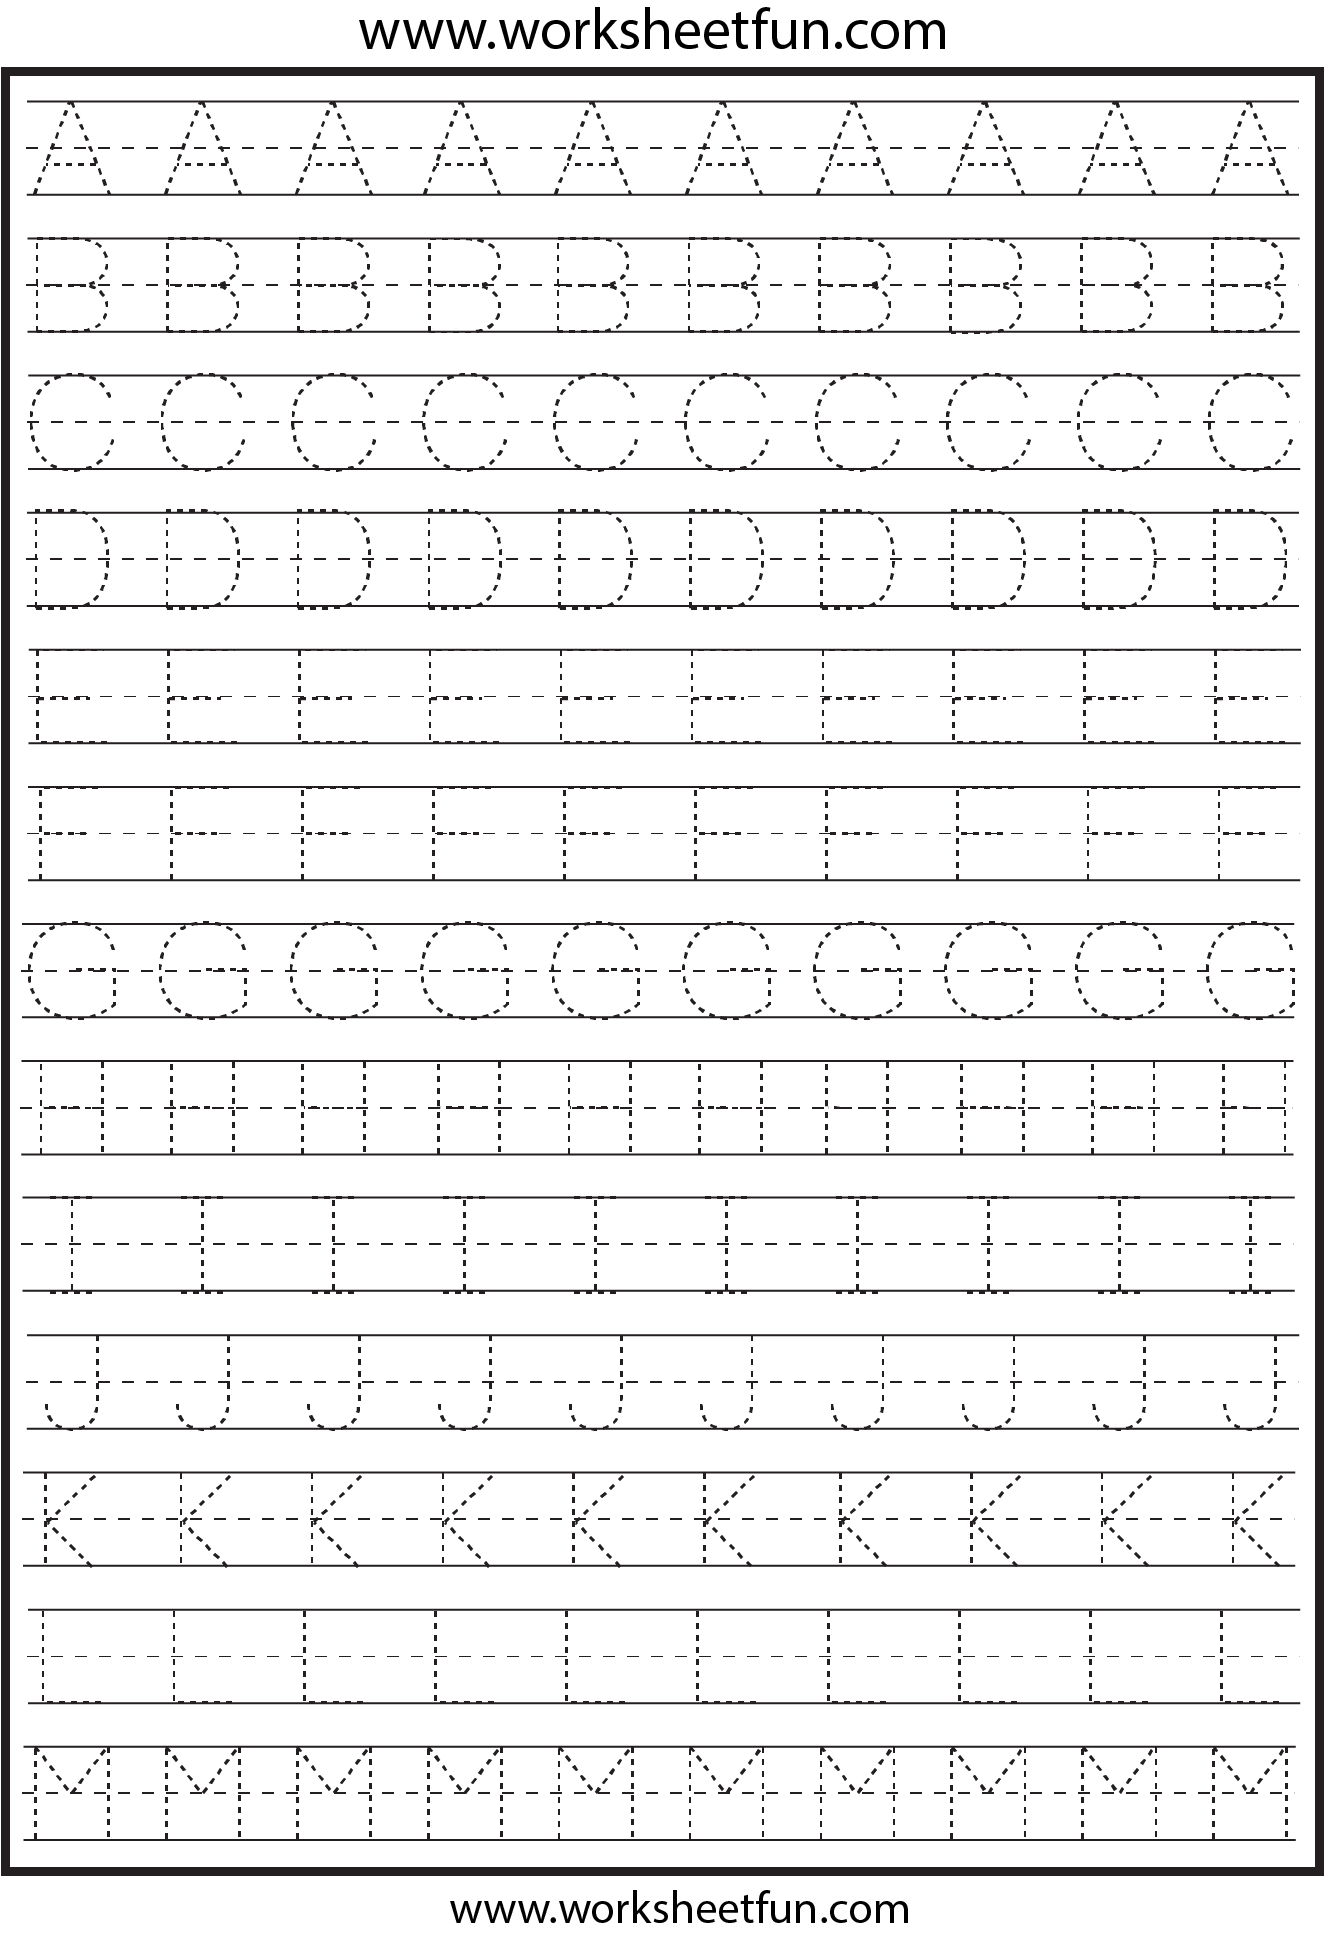 Printables Preschool Worksheets Tracing Letters free traceable alphabet worksheets for preschoolers html capital letter tracing 2 printable worksheets